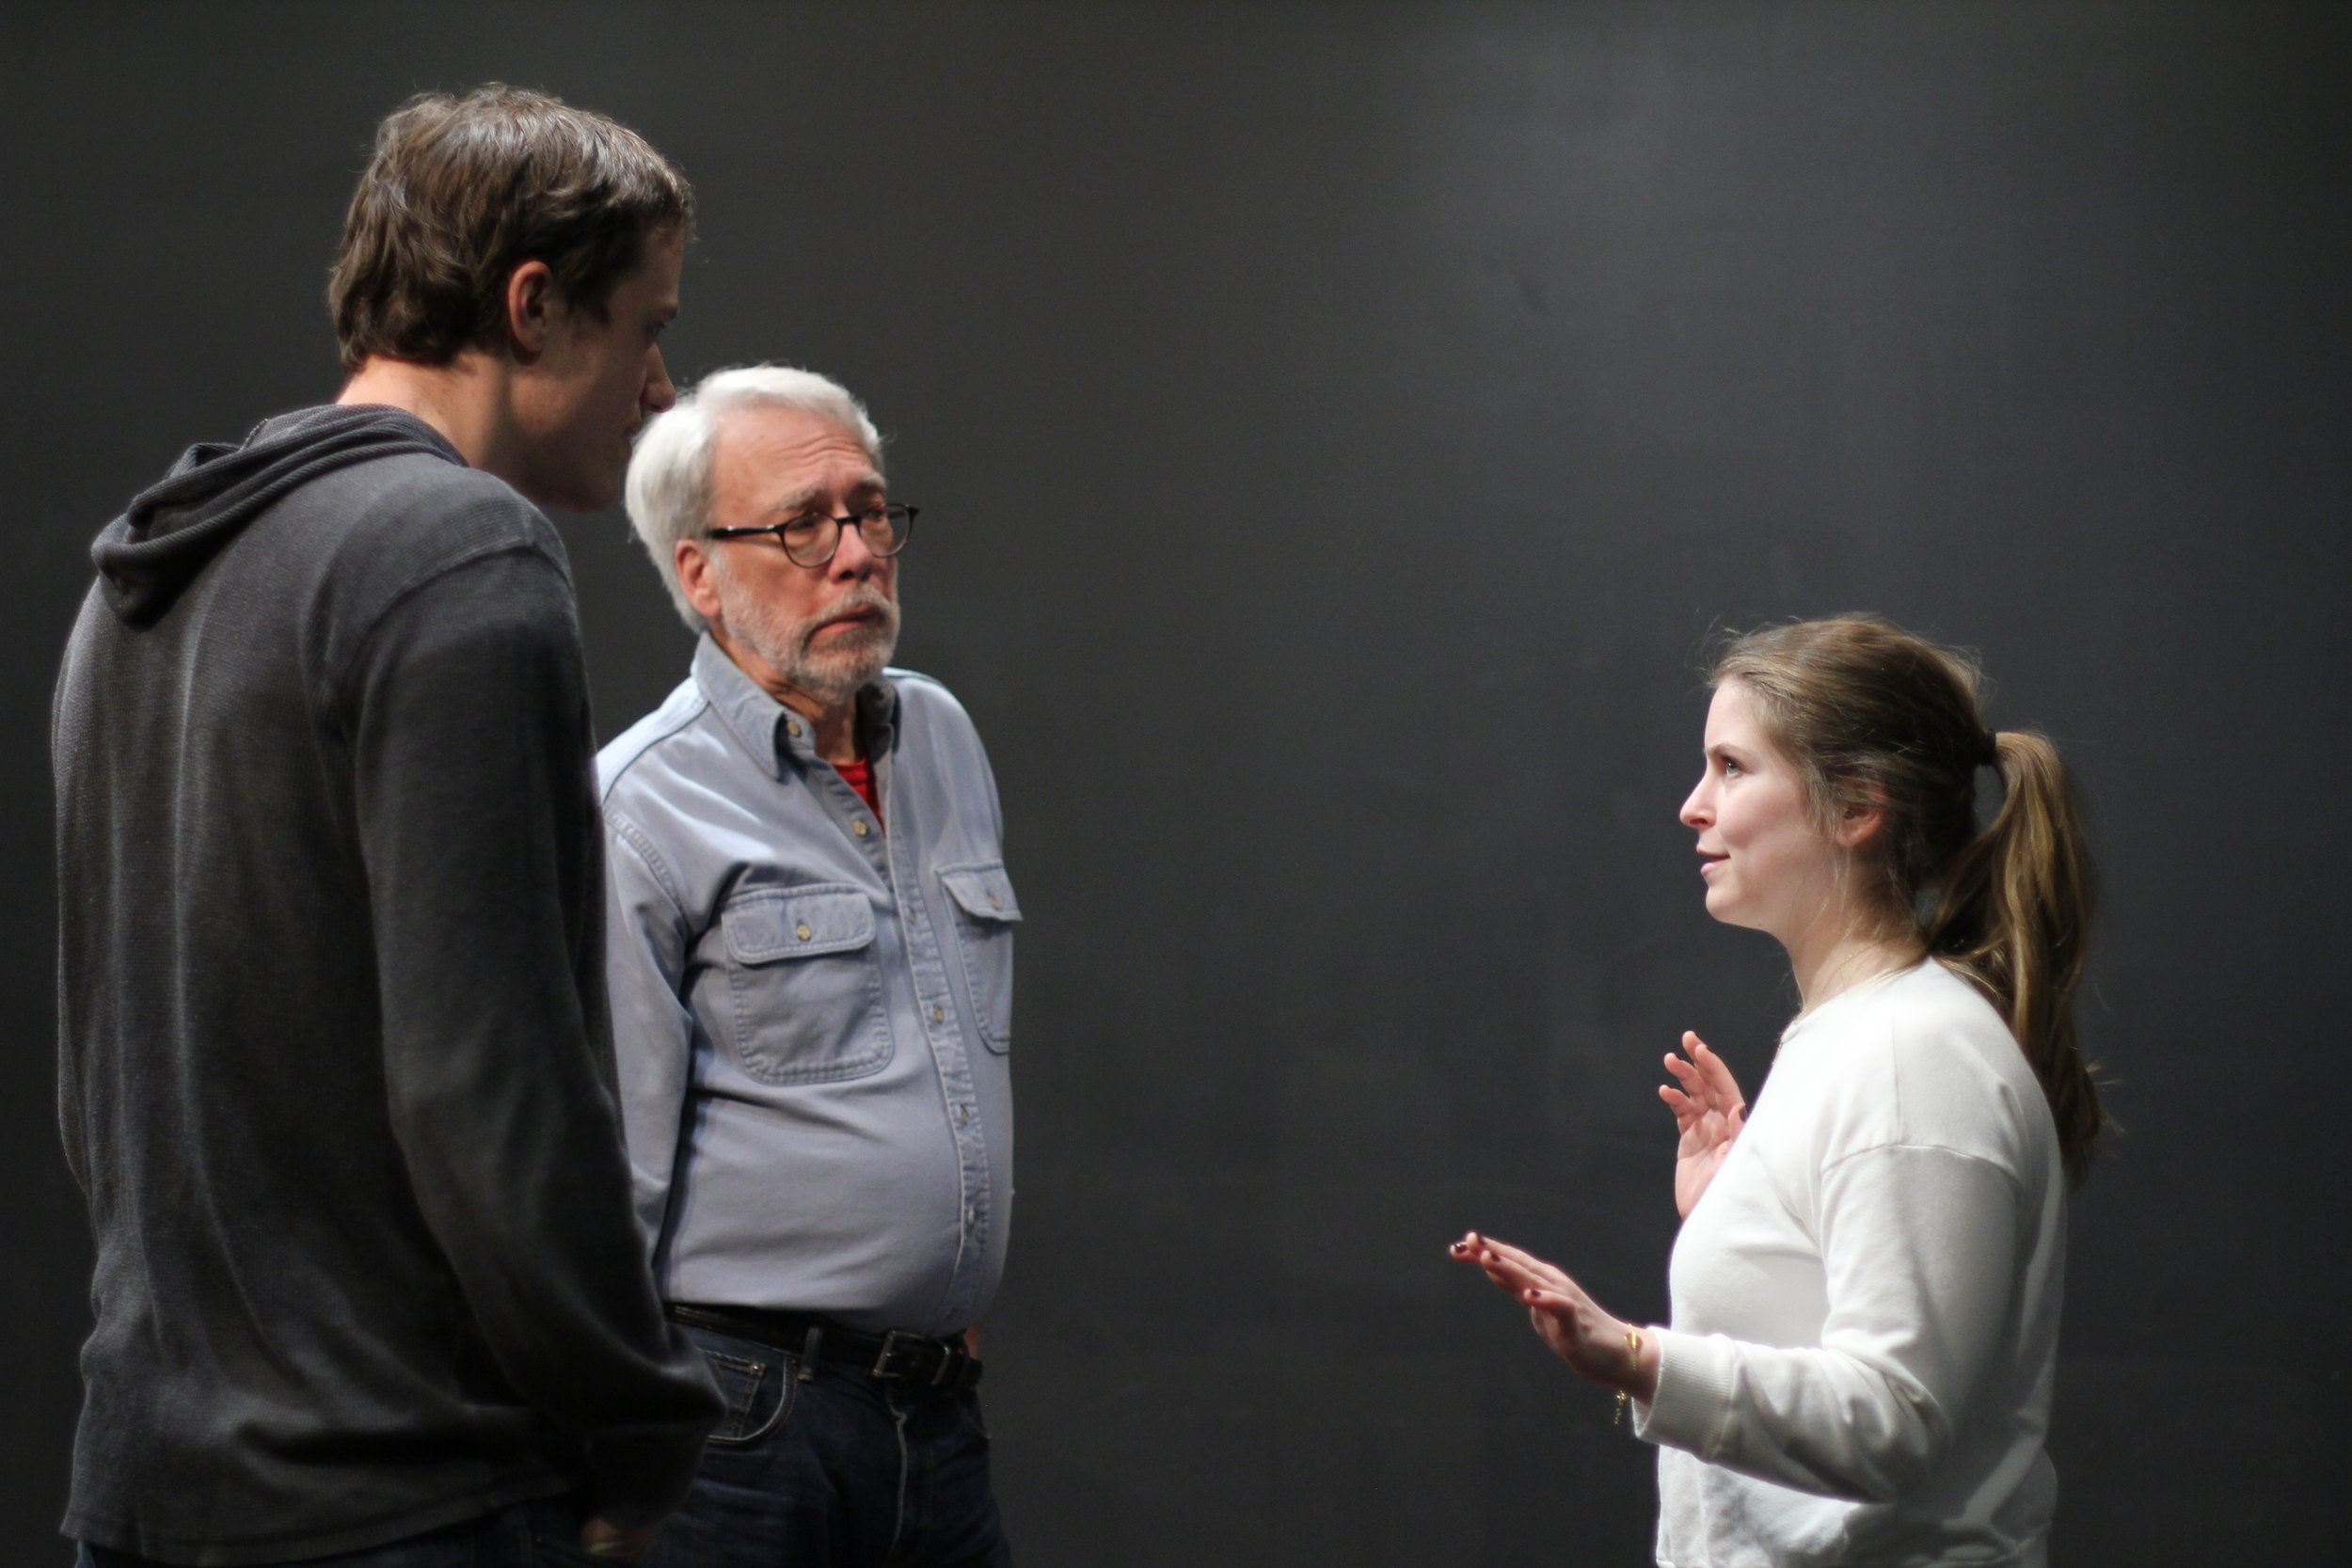 Cole von Glahn (director), Tim Kidwell (David), and Amanda Fink (Ella) puzzle through a moment in scene two.